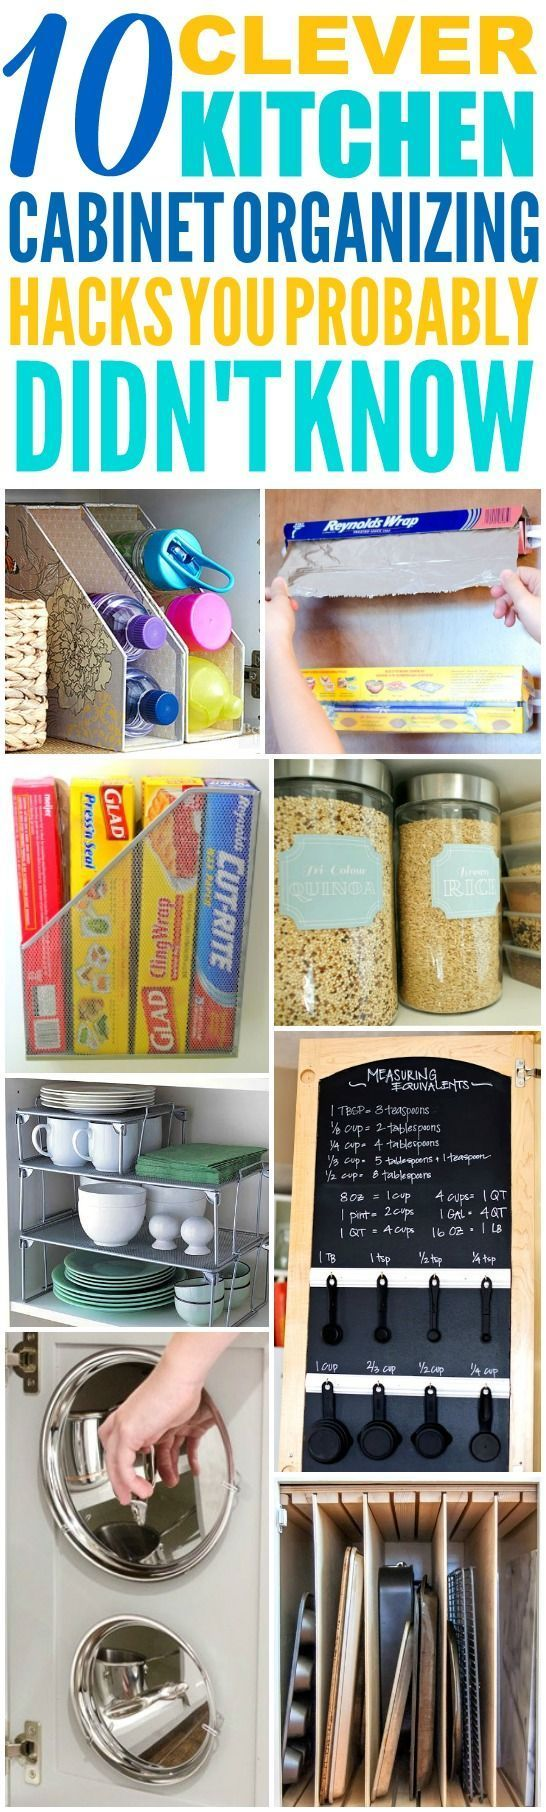 593 best home: organization images on pinterest | cook, diy and at